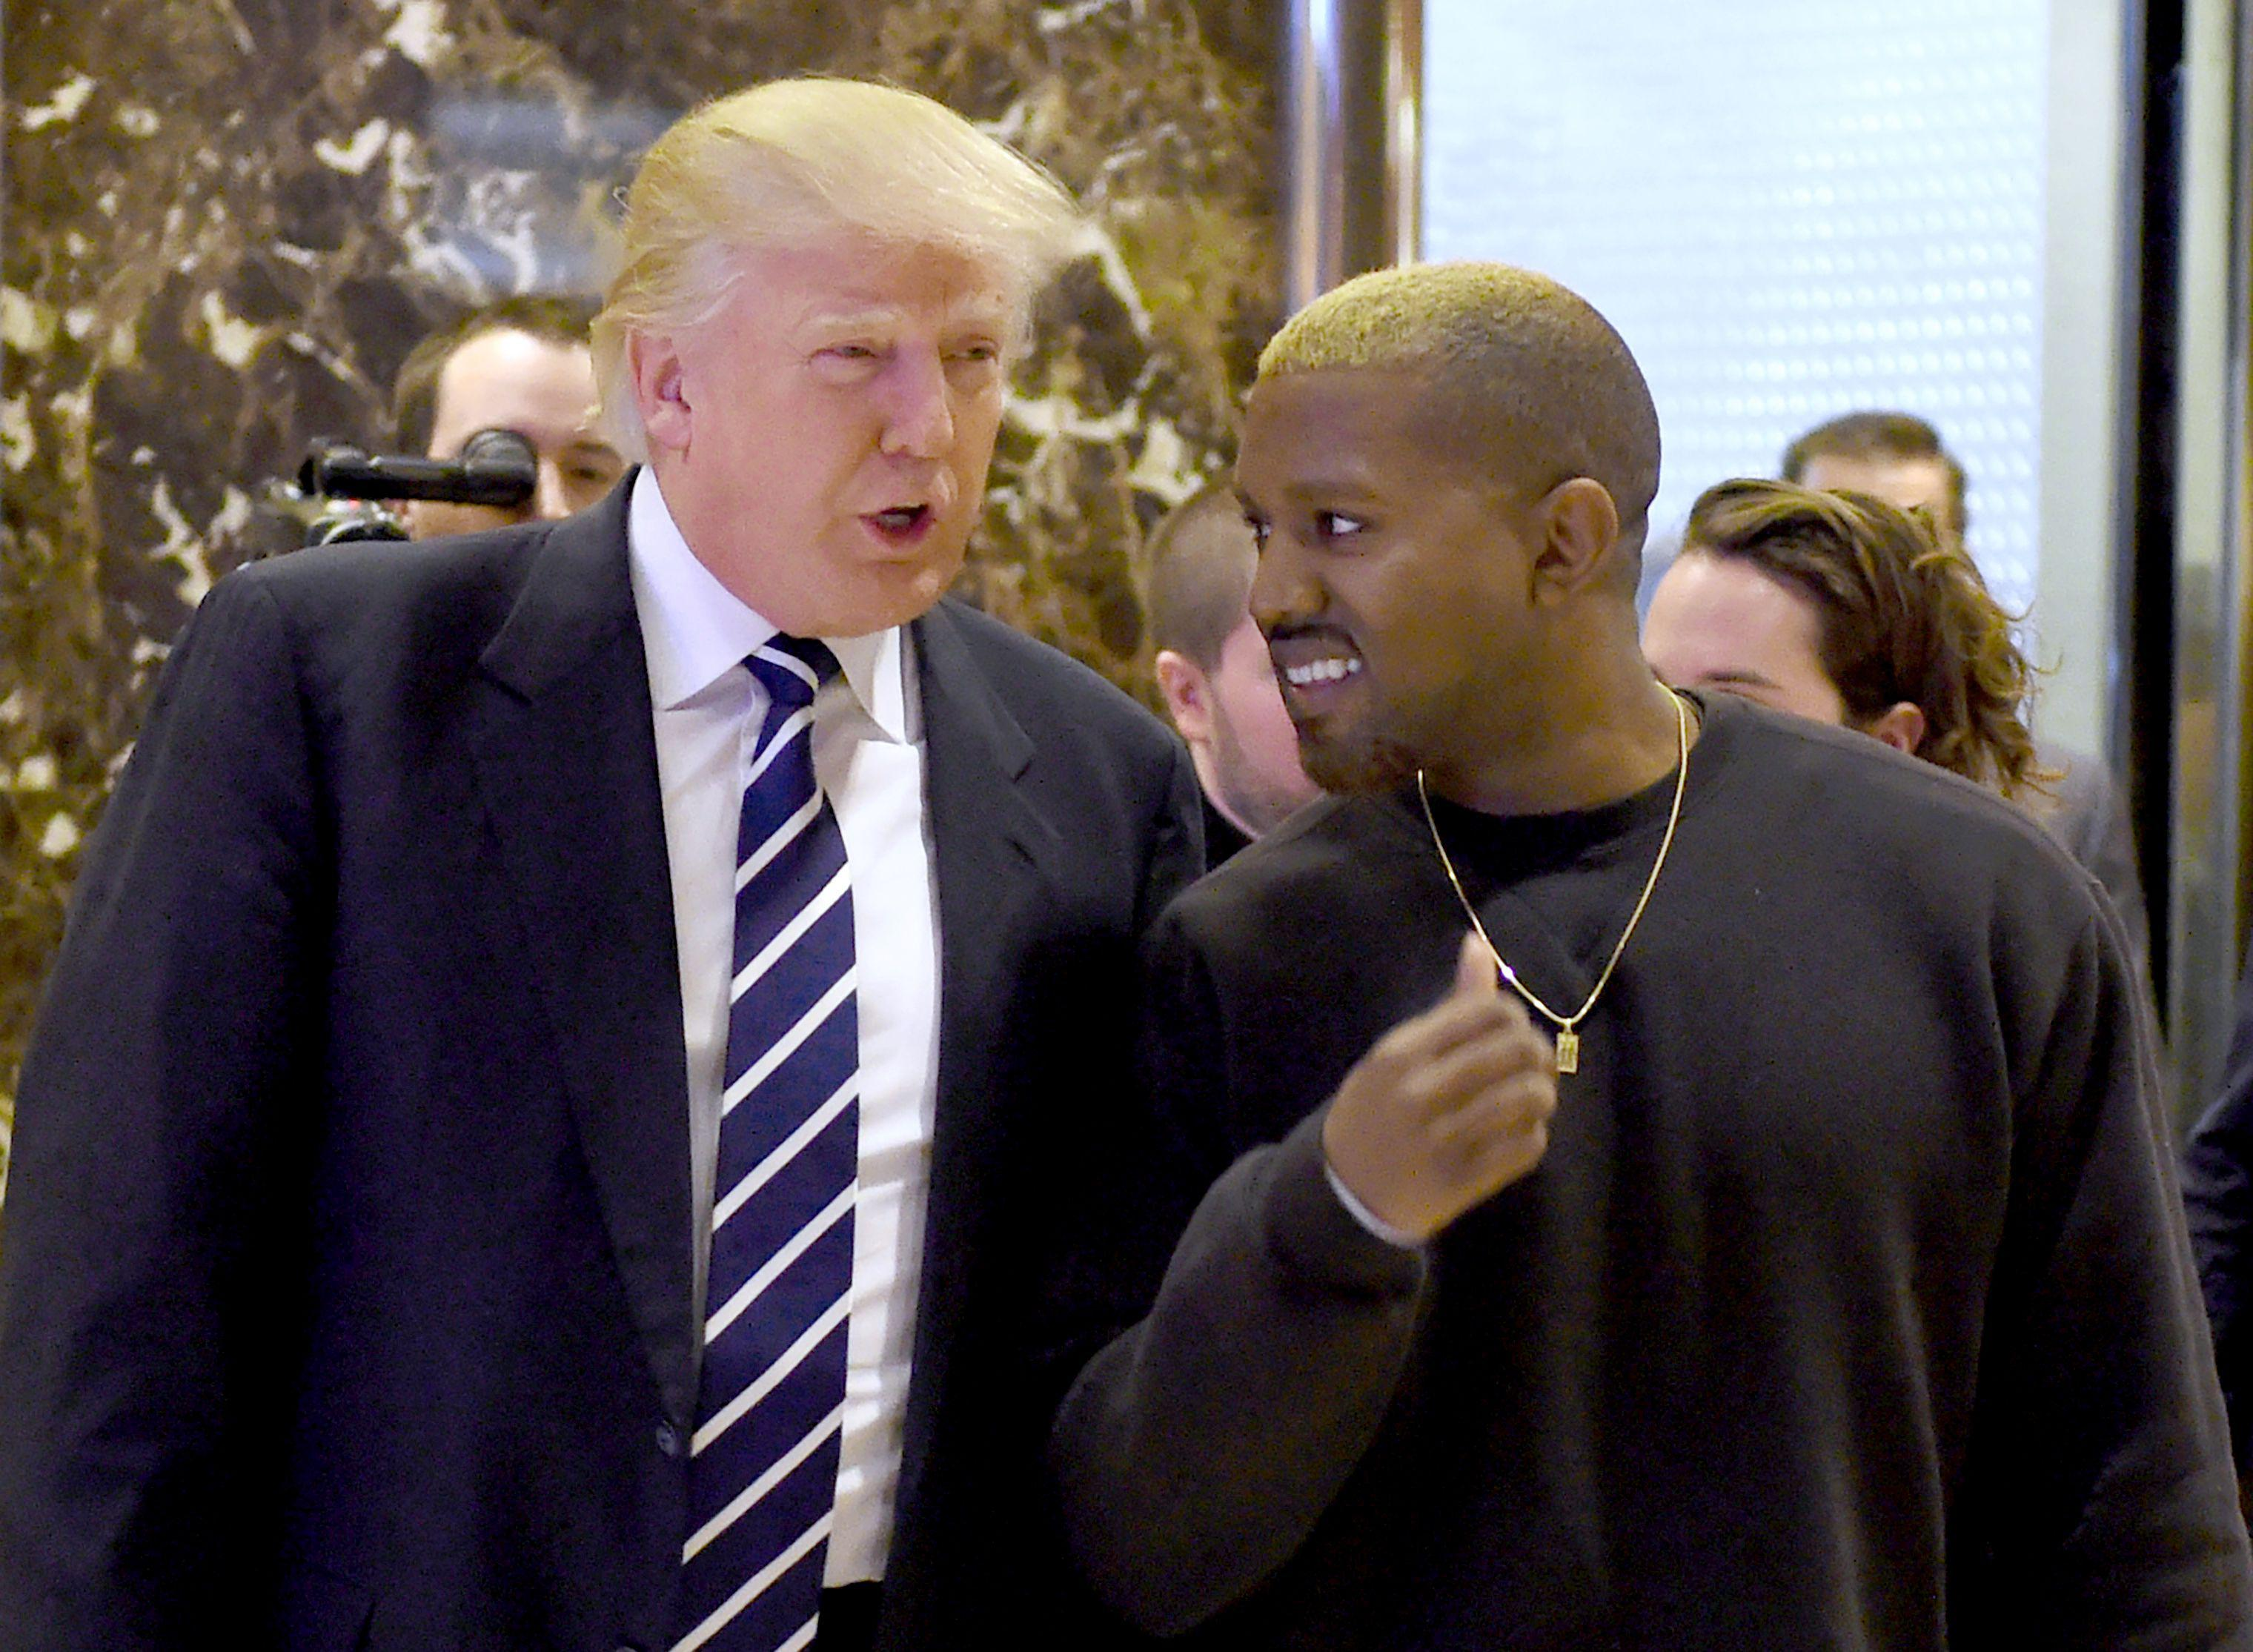 Kanye West and Donald Trump yucking it up at Trump Tower Dec. 13, 2016 in New York.